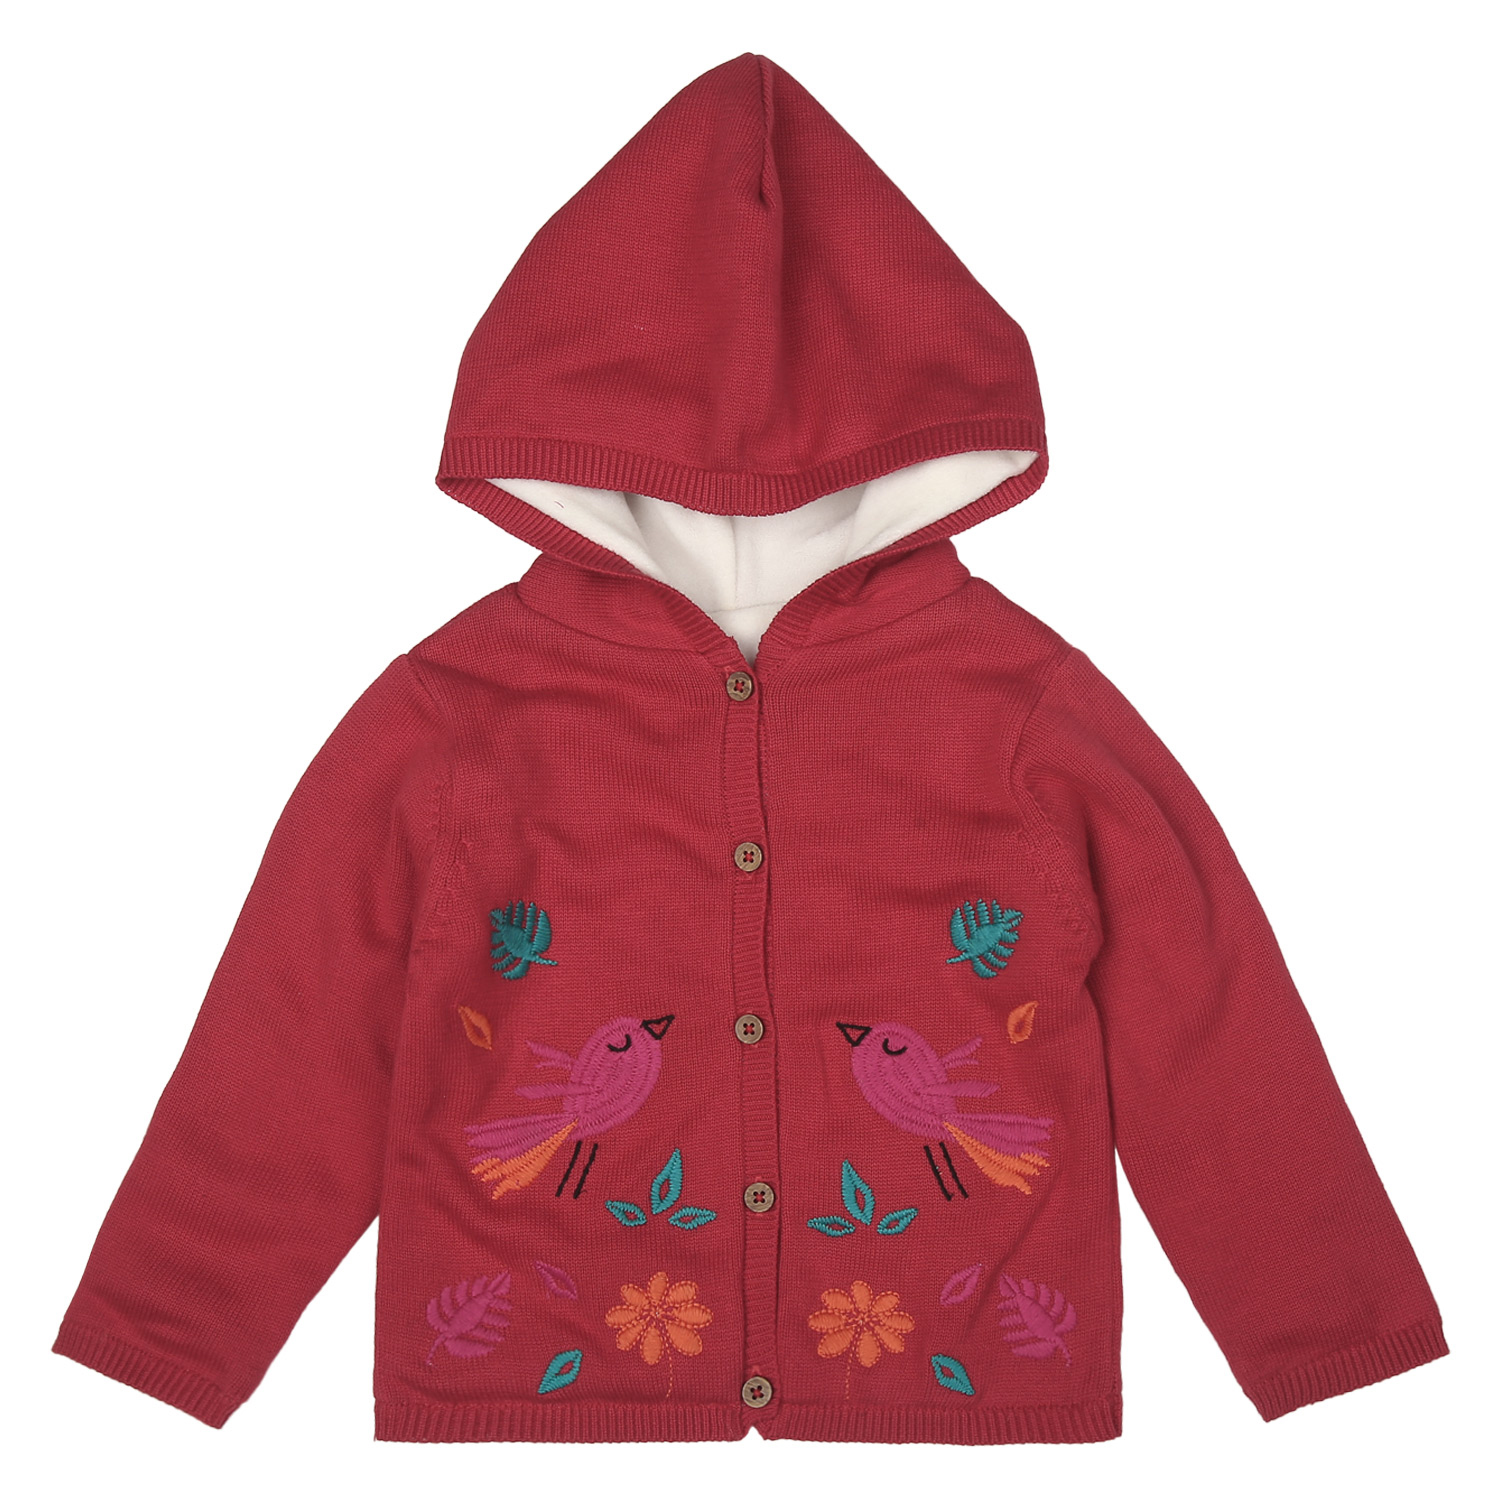 Mothercare | Girls Full Sleeves Embroidered Sweatshirt - Pink